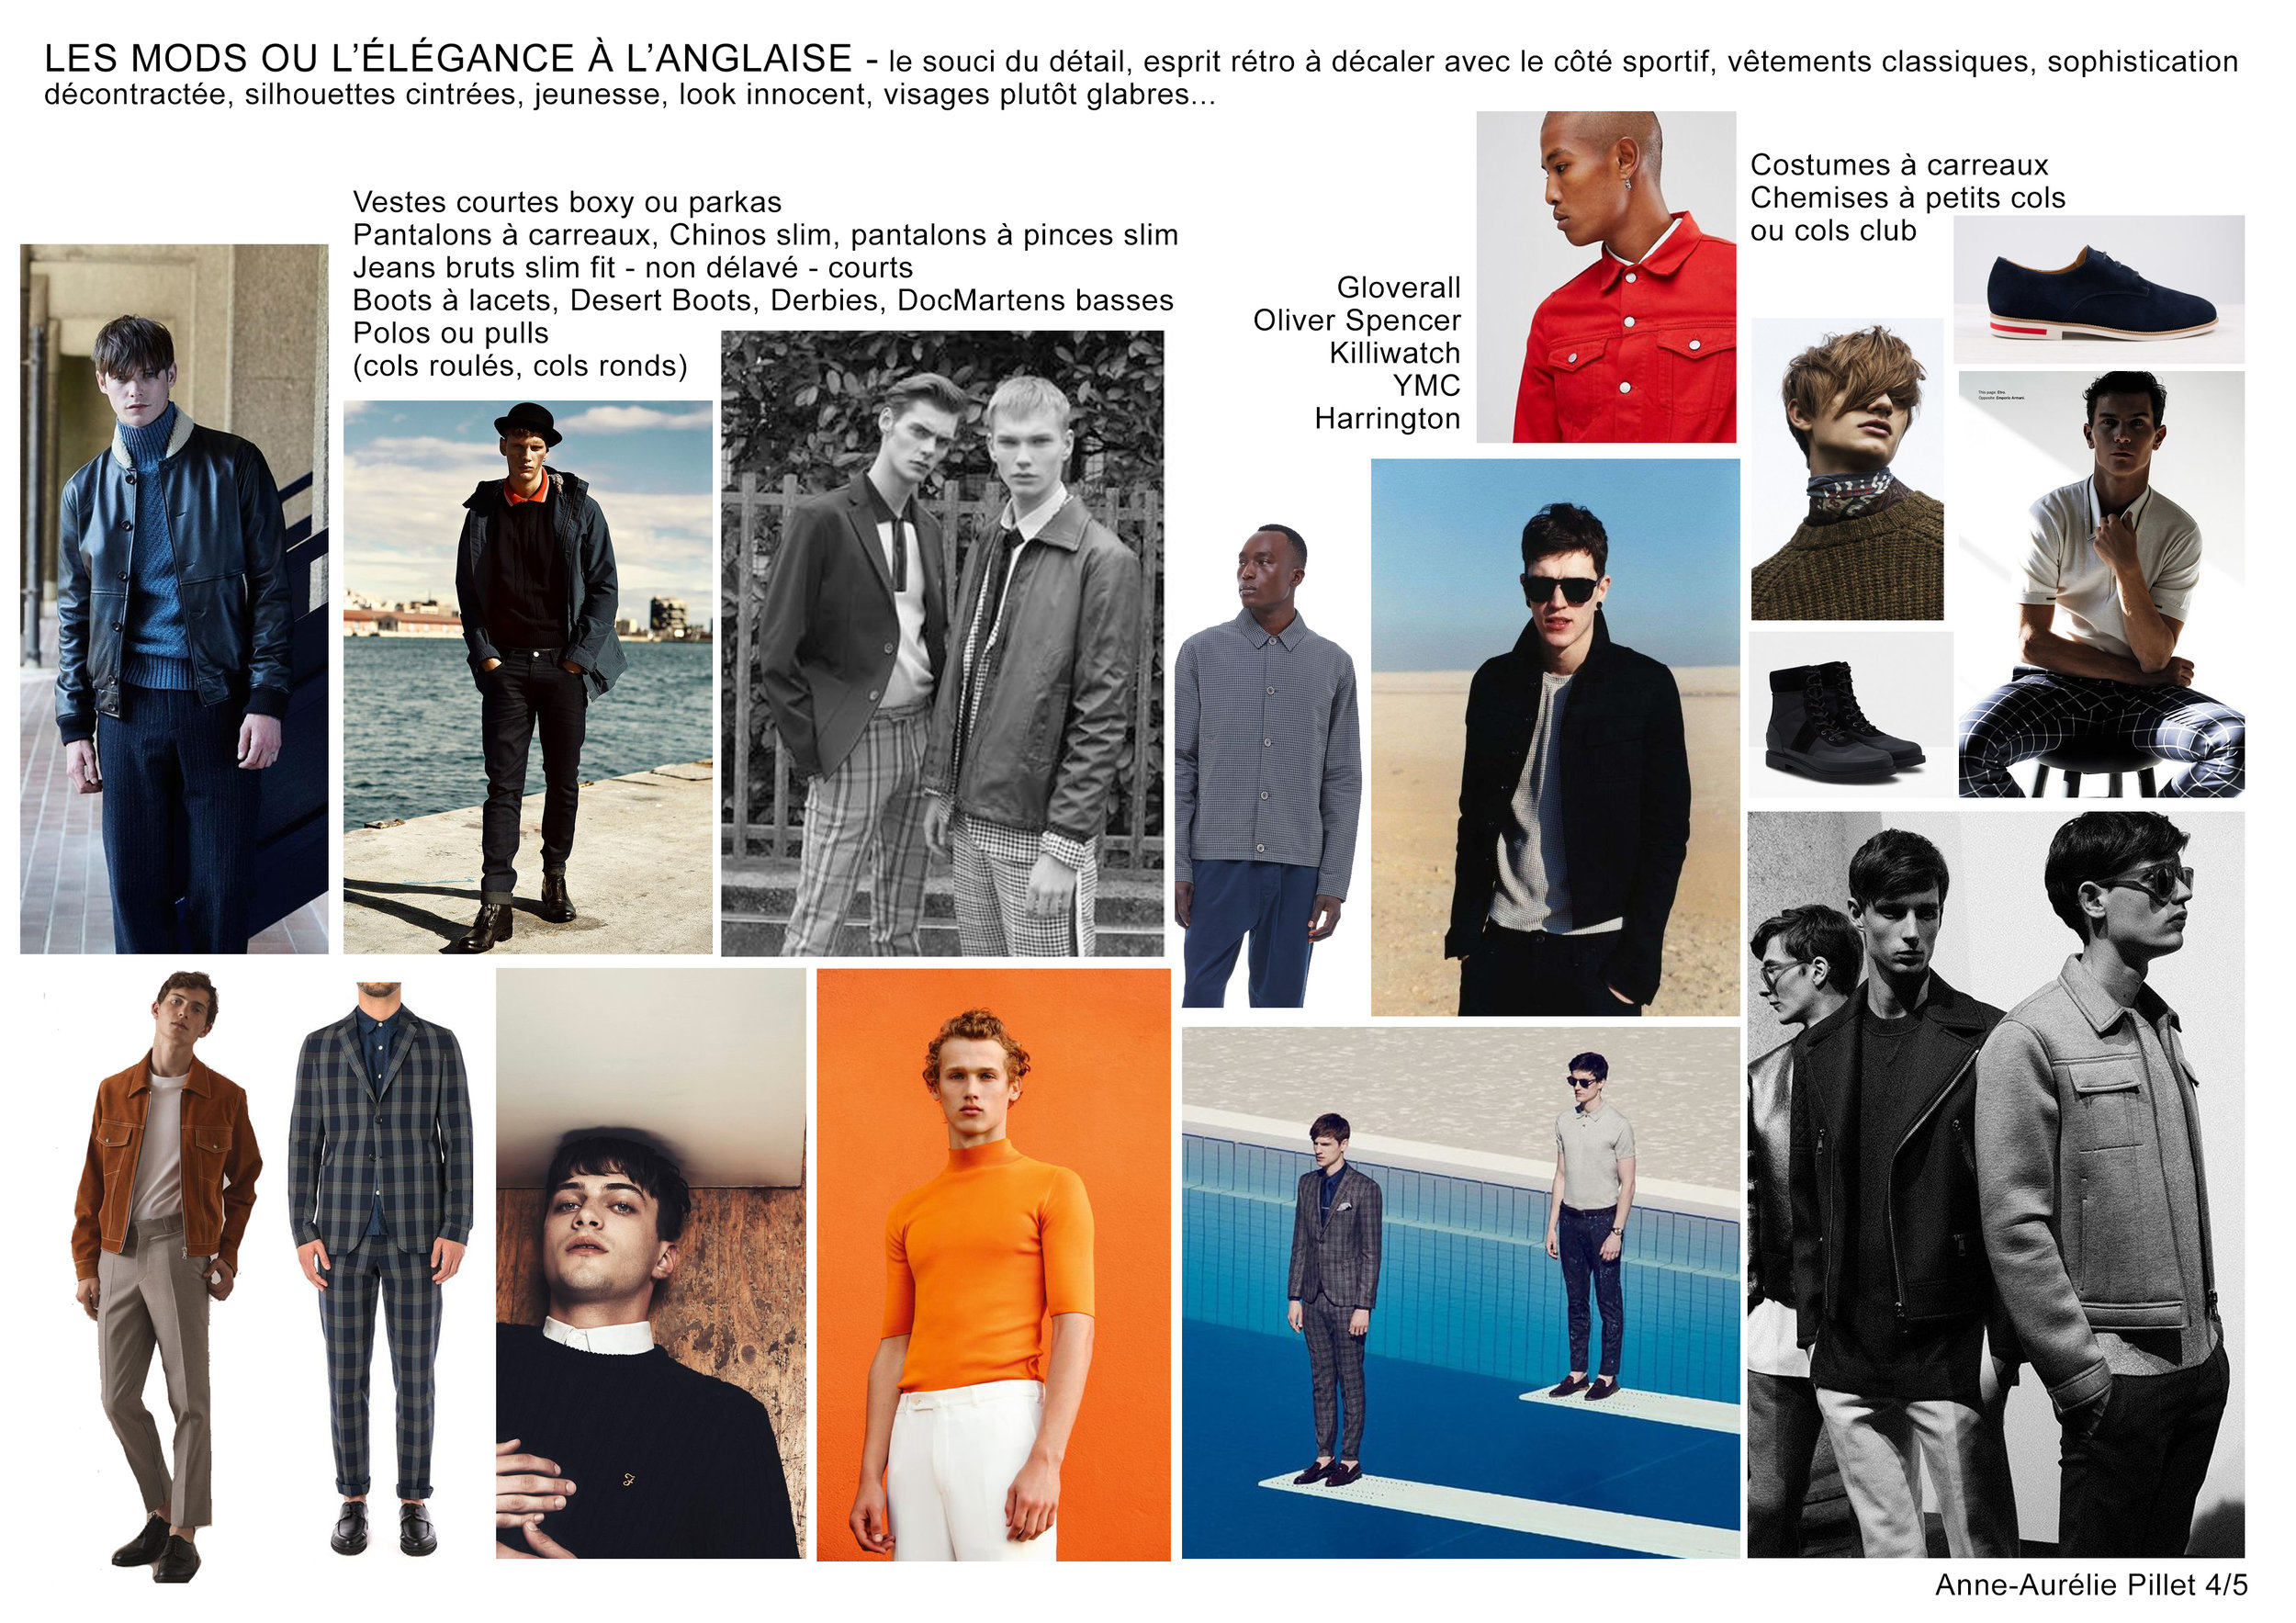 In Bel Air's music, there is a feeling of sweet nostalgia that remind us of the 1960s and a certain subculture. The guys of the band wear clothes that reminded me of the Mods or Les Yéyés in France so I made a board that would give them an idea of the typical vestiaire of these young subcultures and how to use these wardrobe codes.